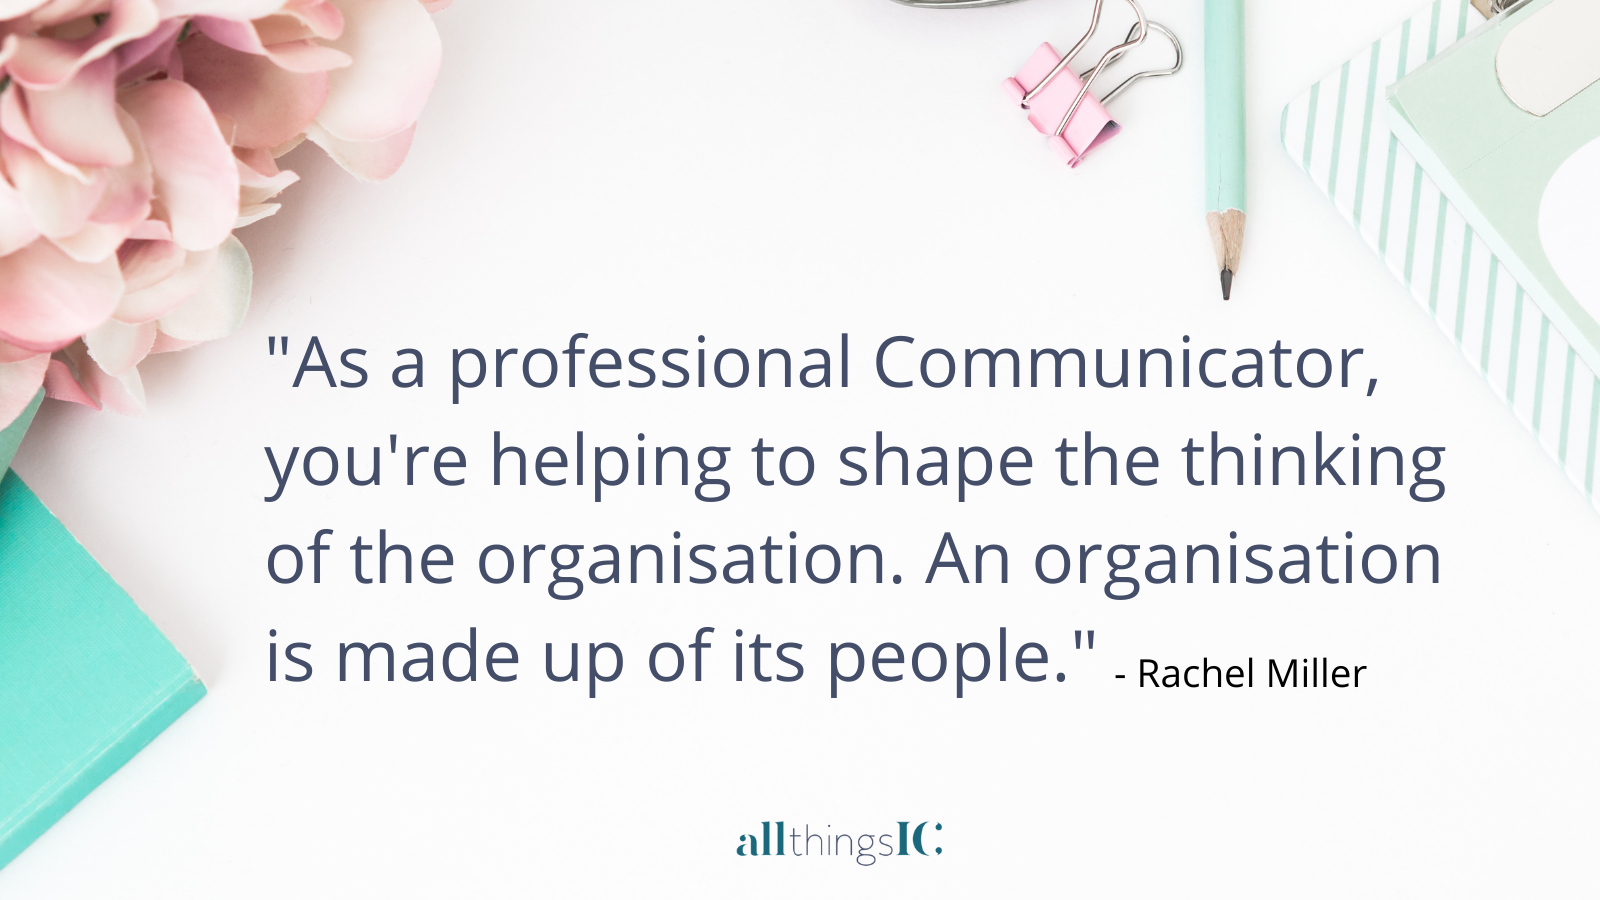 You're helping shape the thinking of the organisation. An organisation is made up of its people.